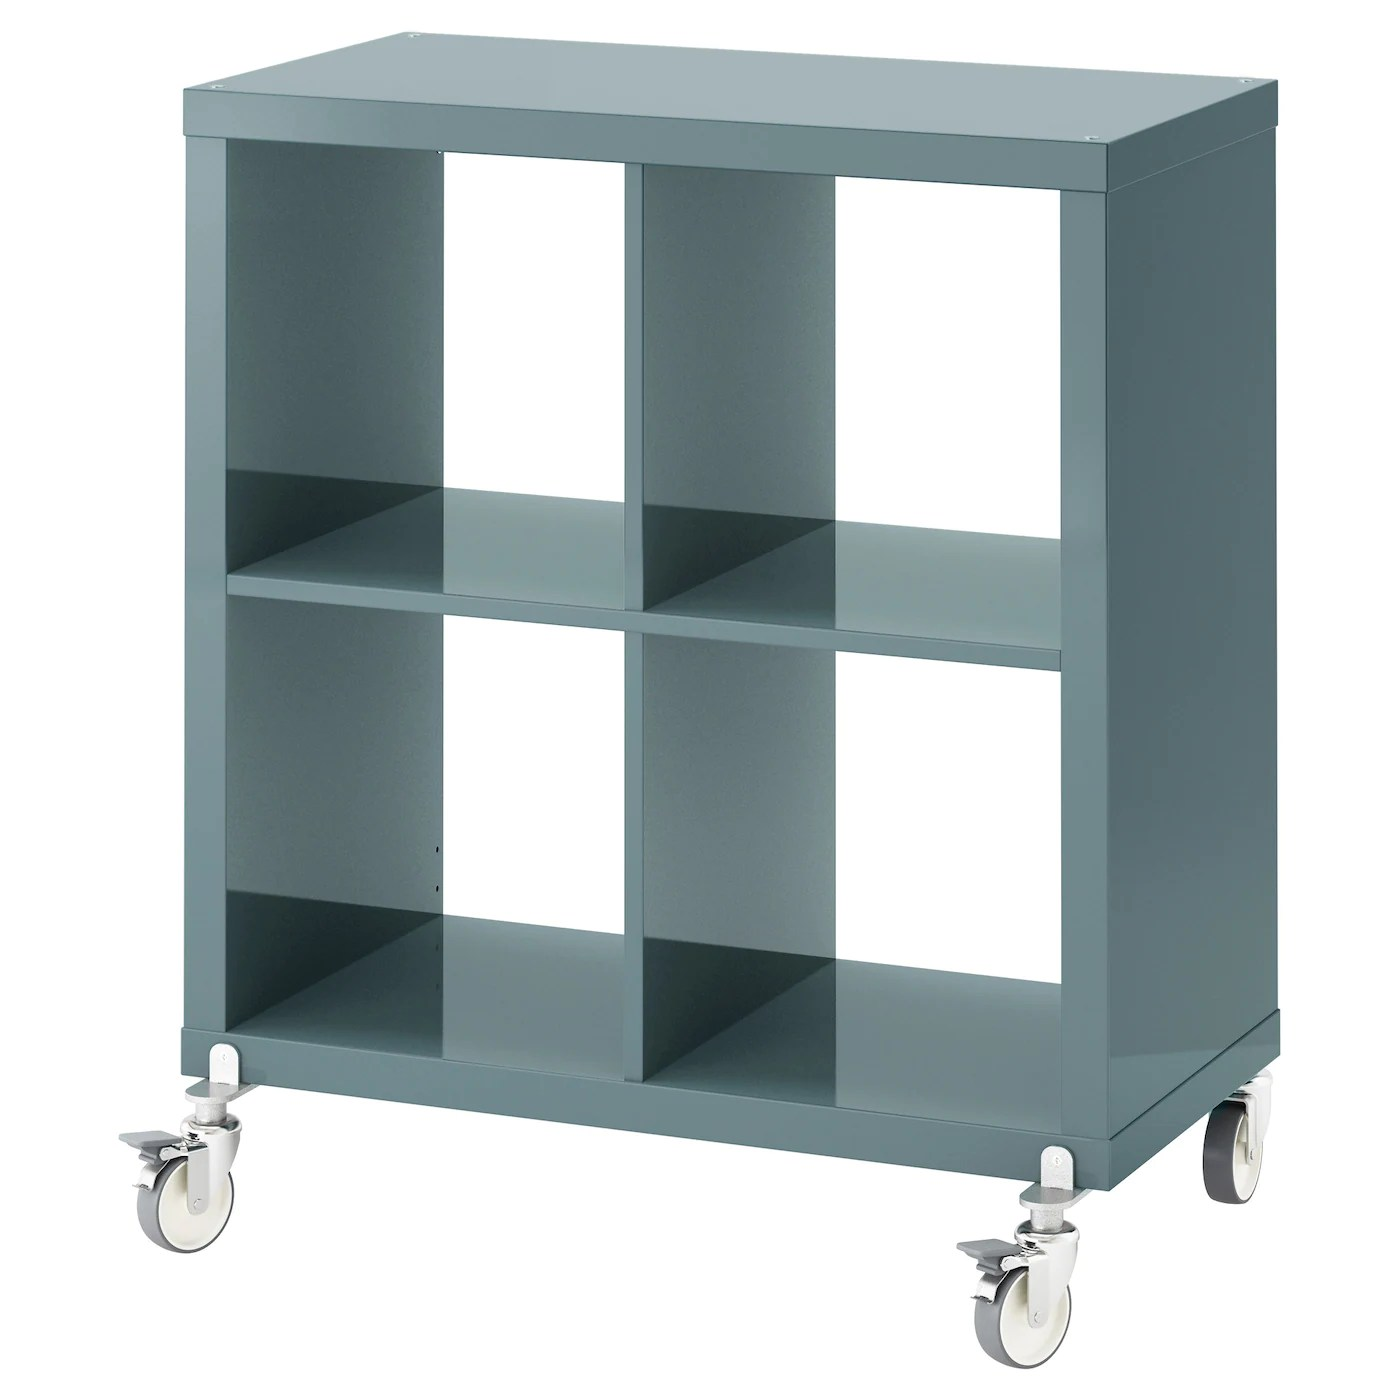 Rollregal Küche Kallax Shelving Unit On Castors High Gloss Grey Turquoise